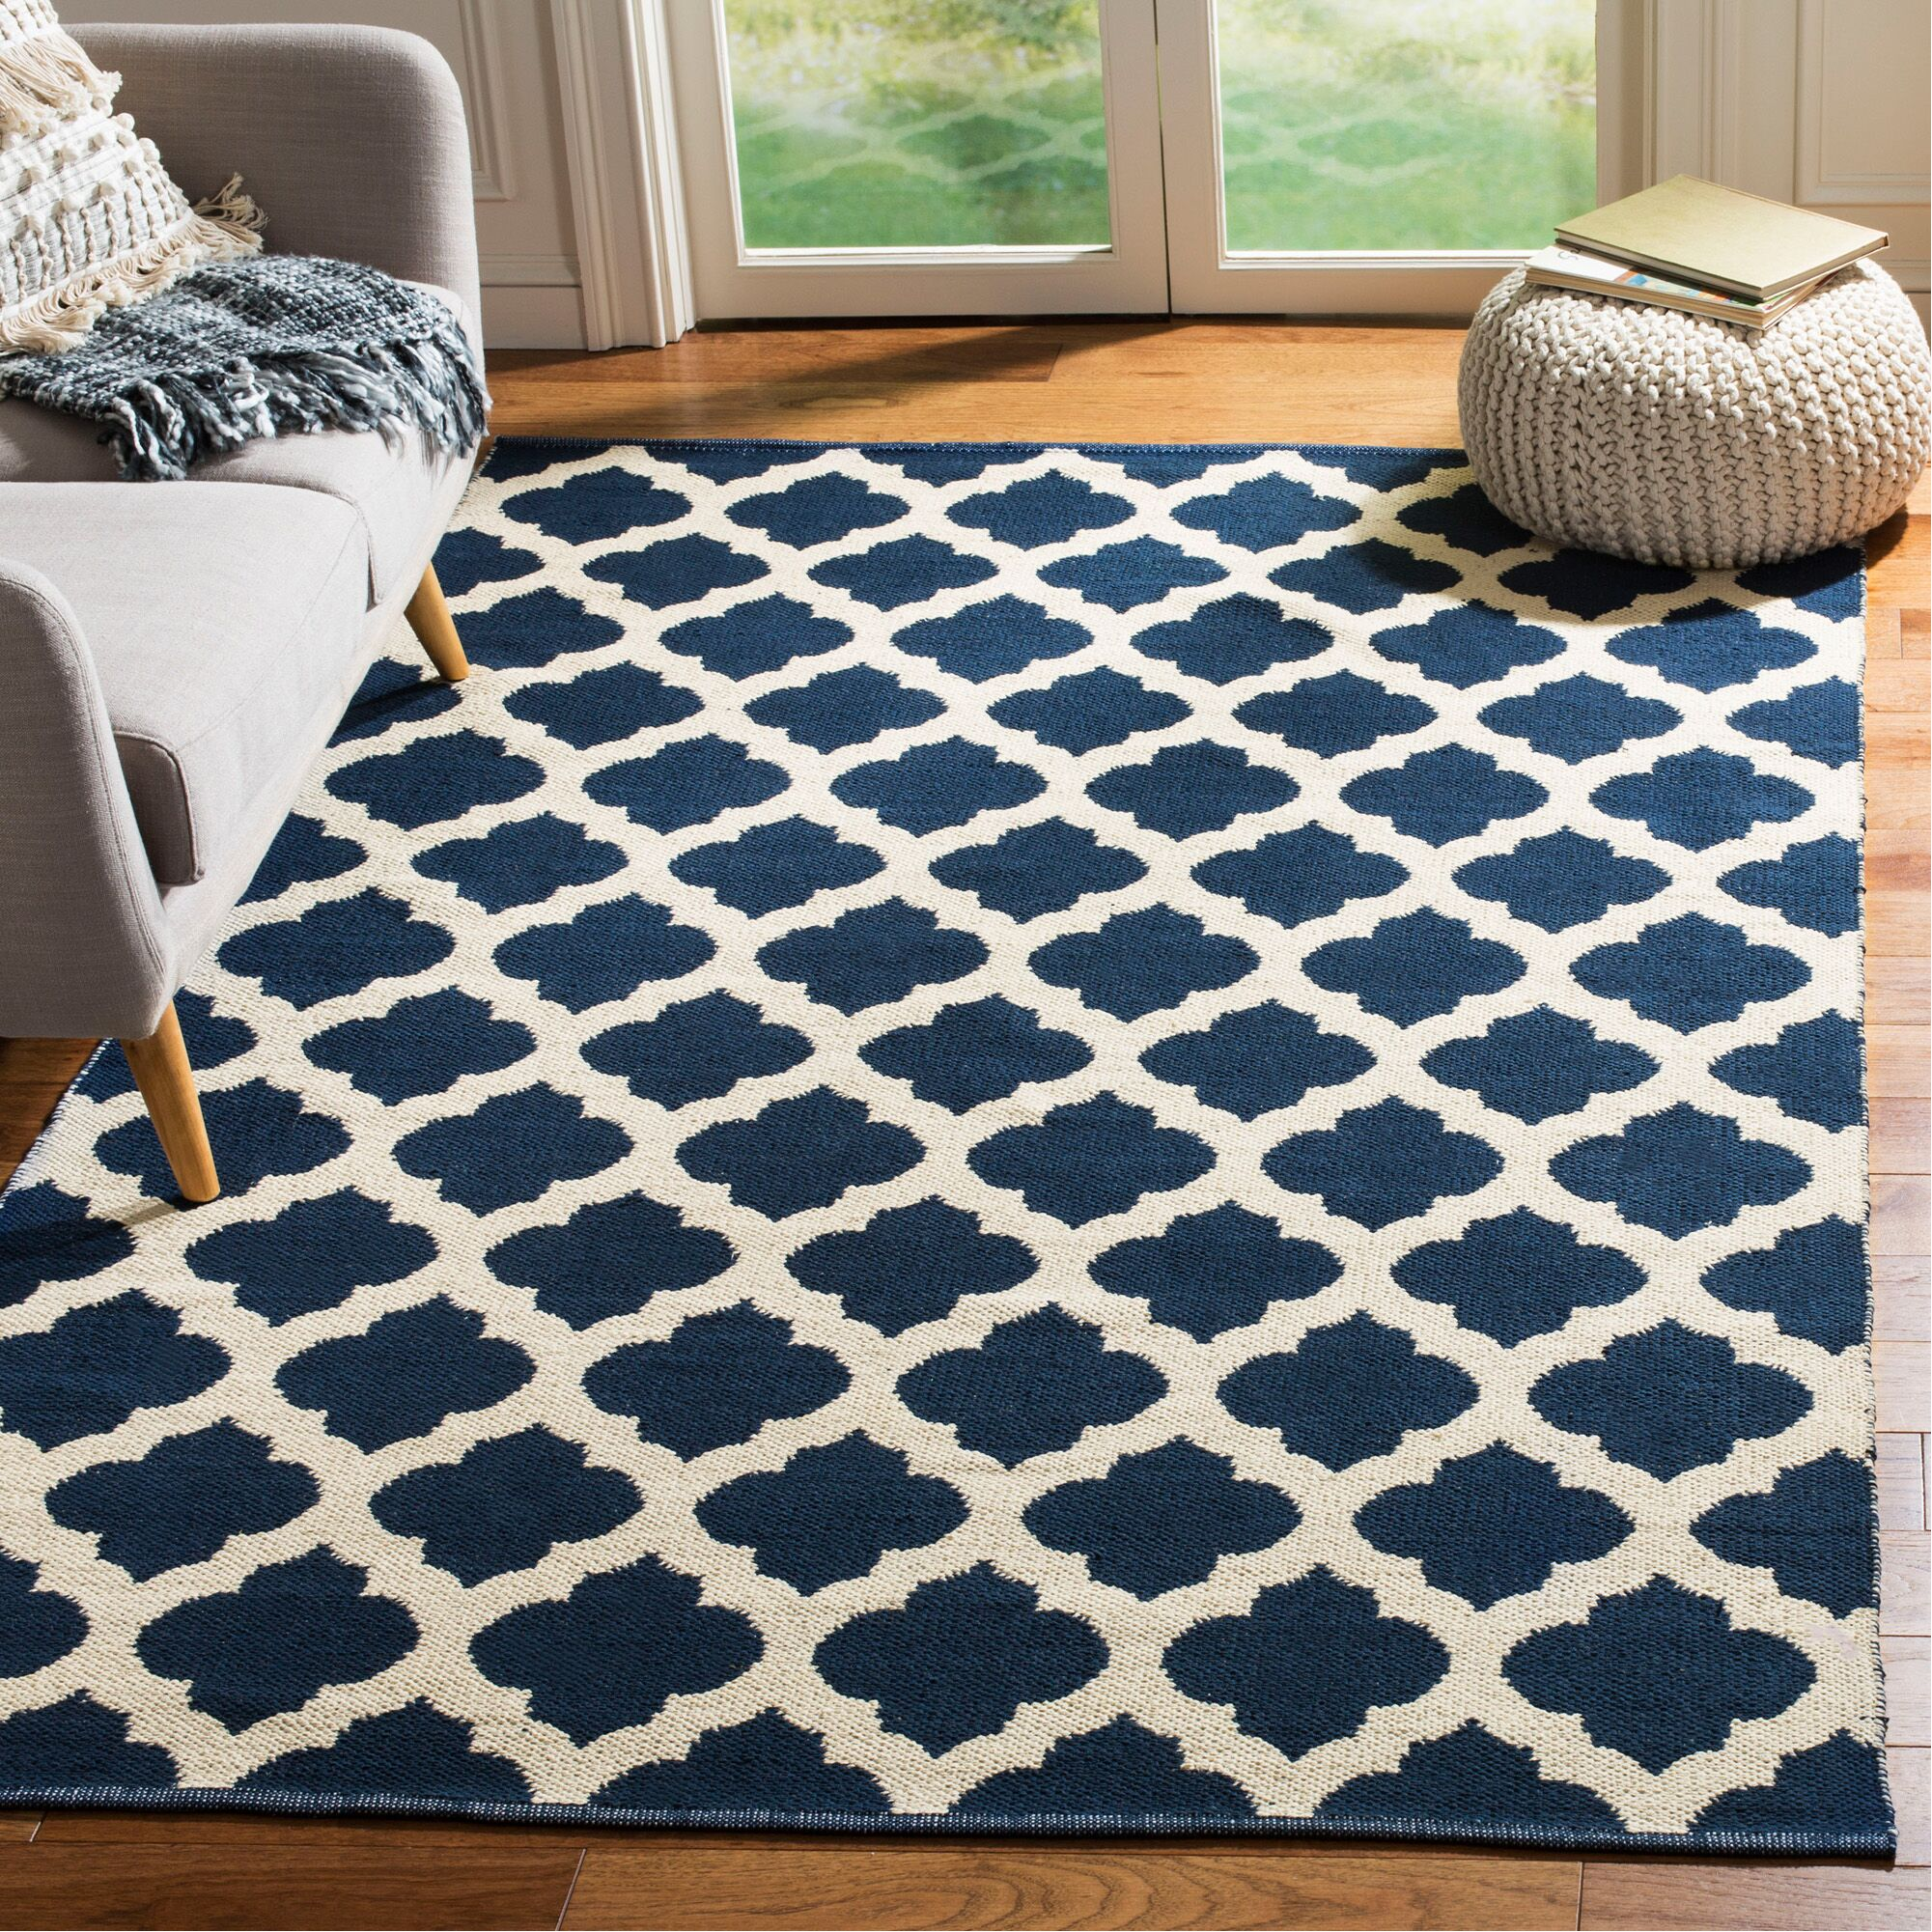 Willow Hand-Woven Navy/Ivory Area Rug Rug Size: Rectangle 5' x 8'